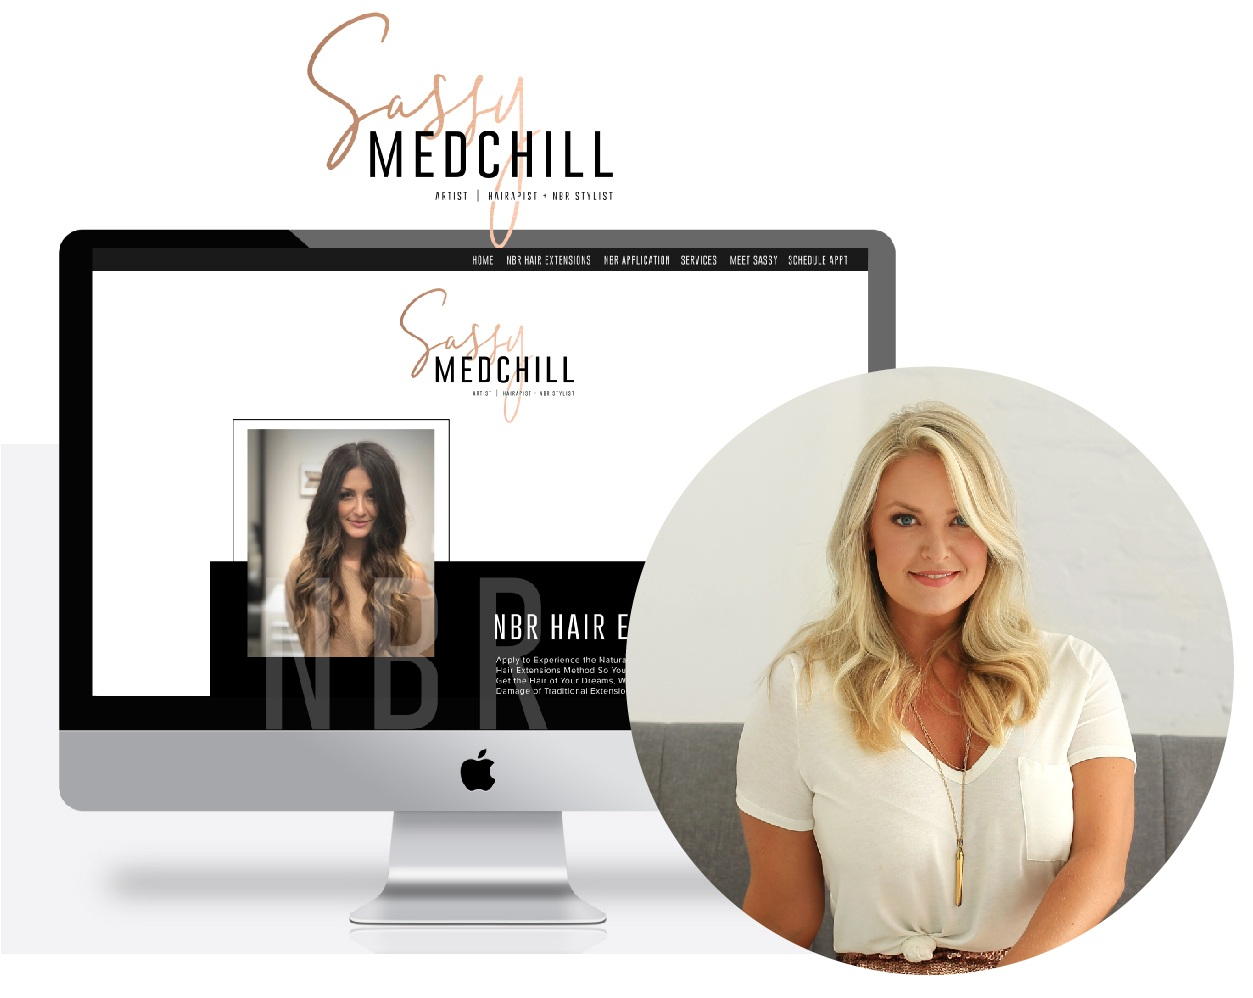 """I was BEYOND excited to reveal my new branding & website designed by the ever so talented, Walcot Studio. Deidre was able to capture my journey, rebrand my whole business and set up the beautiful website without me having to lift a finger....seriously the easiest process y'all! It's super easy to navigate, to see before & after pictures, read FAQs and most importantly, drive clients to immediately apply right on the site to become a part of the NBR family! The strategy Deidre put behind the website makes it 100x easier to manage new clients, accept deposits and track where people are finding me! Thank you Walcot Studio for bringing my vision to life!""  - Sassy Medchill, NBR Hair Stylist"